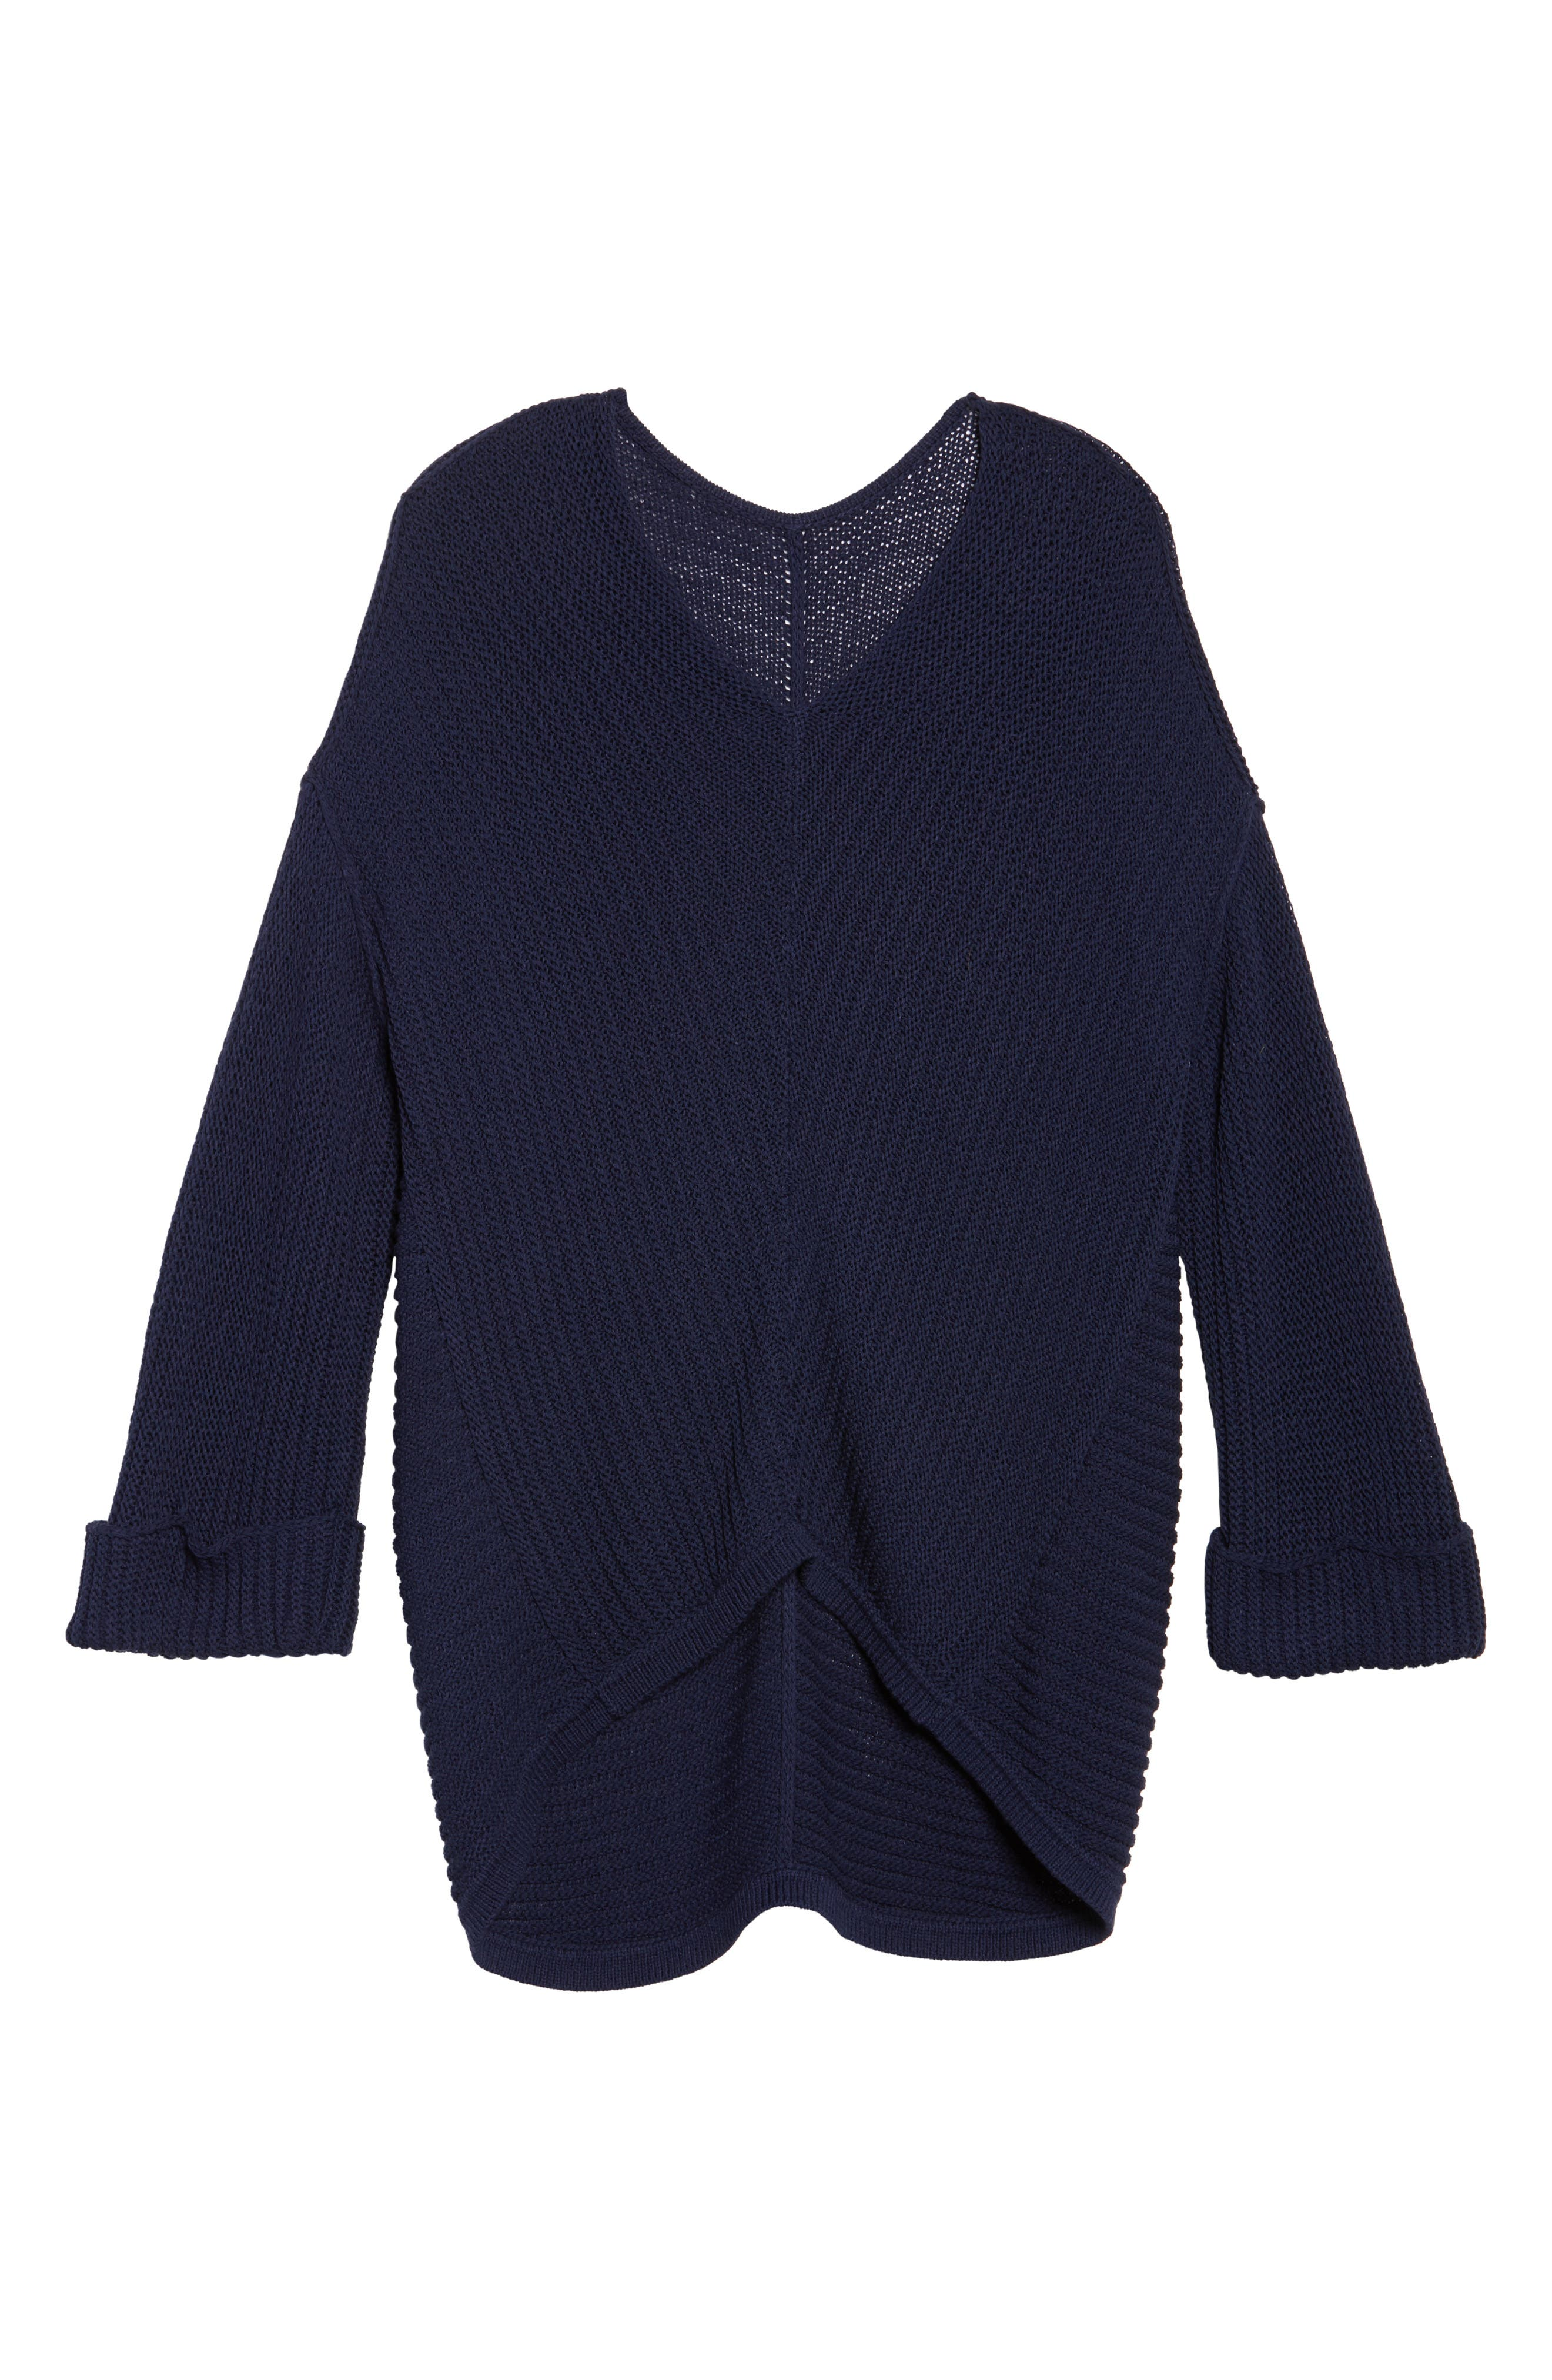 Cuffed Bell Sleeve Sweater,                             Alternate thumbnail 6, color,                             Navy Peacoat